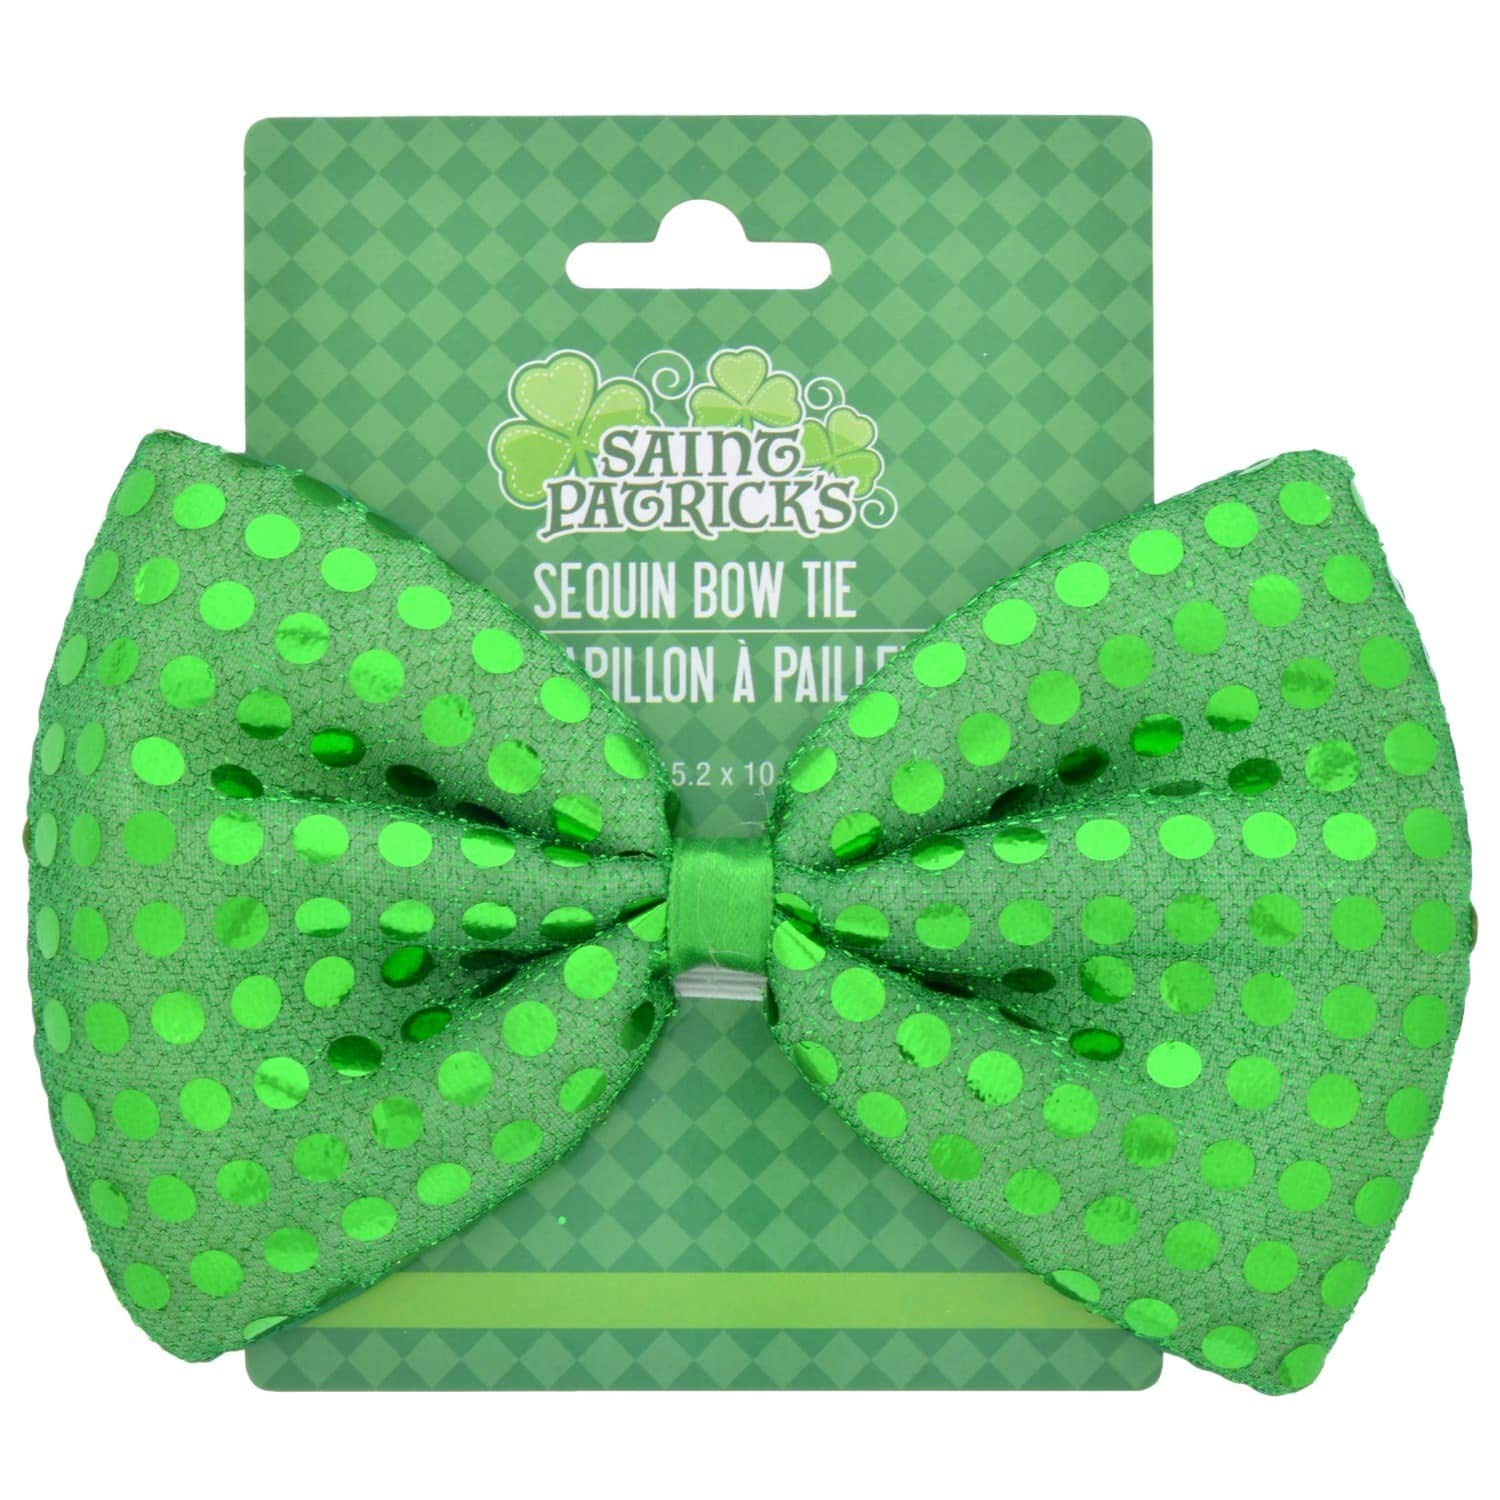 and Shamrock Light up Ring Green Onestone48 Sequined Bow Tie St Patricks Day Accessories Felt Hat with Belt Band